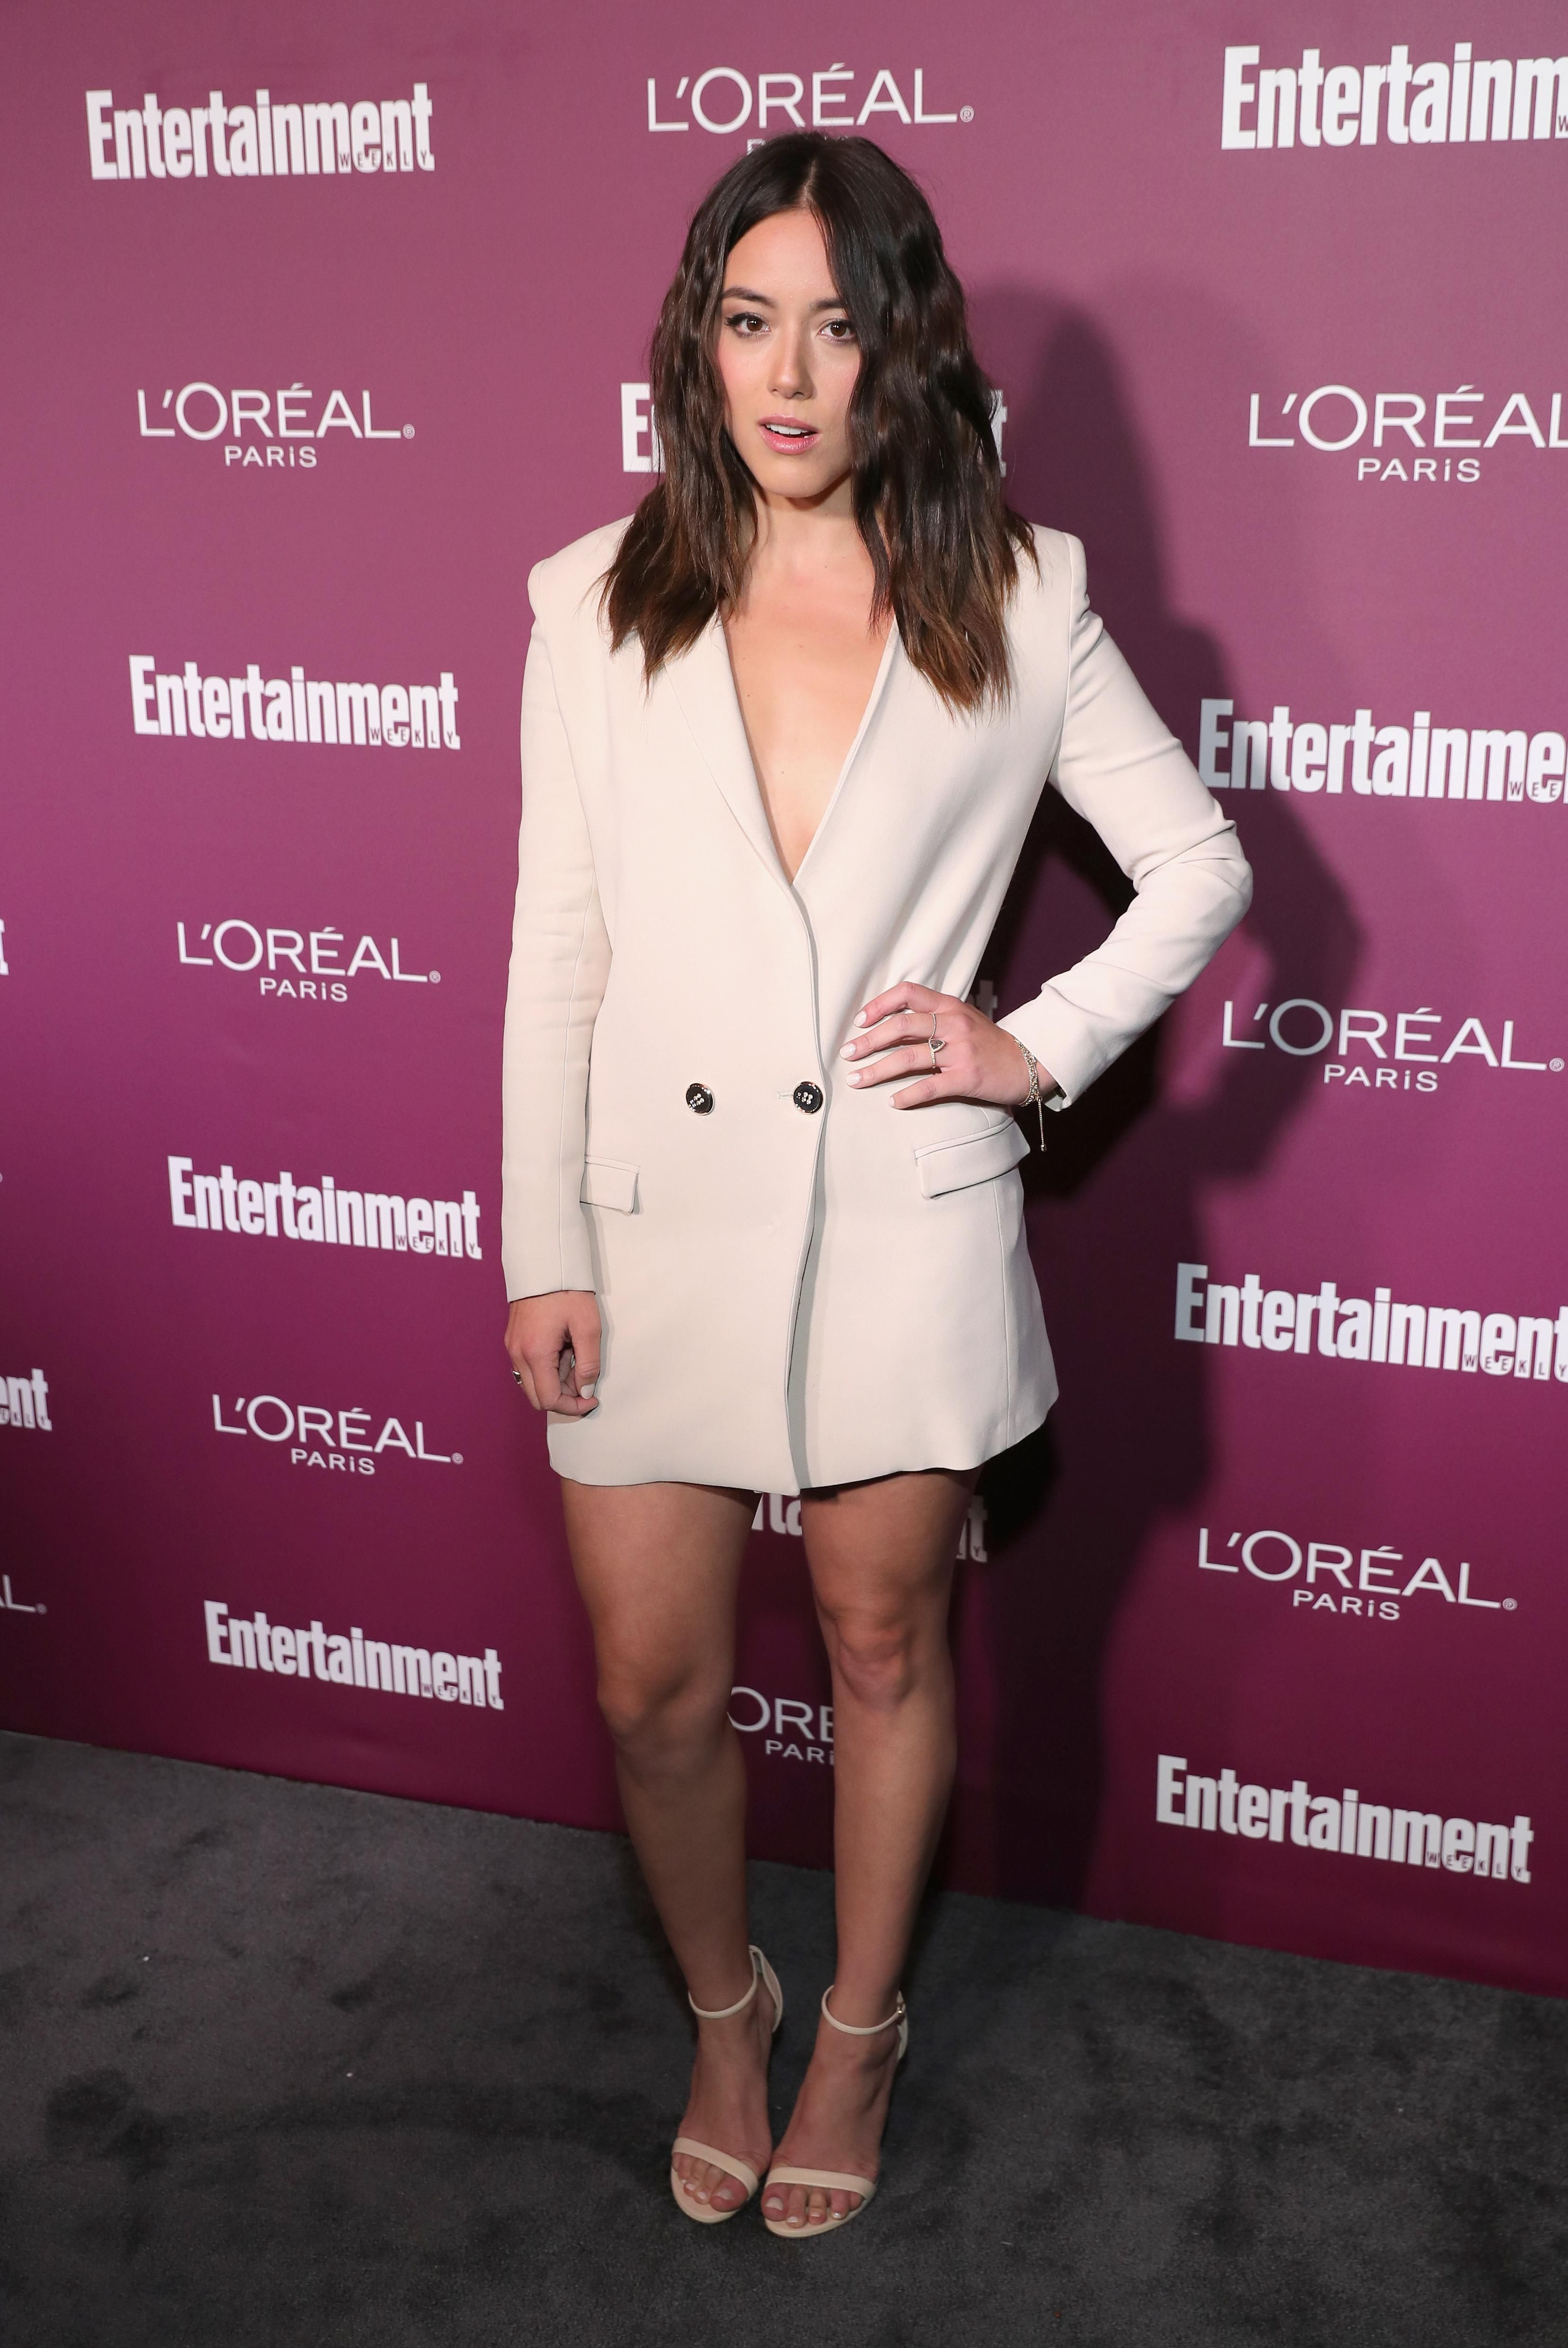 Hacked Chloe Bennet naked (73 photos), Topless, Leaked, Feet, butt 2018